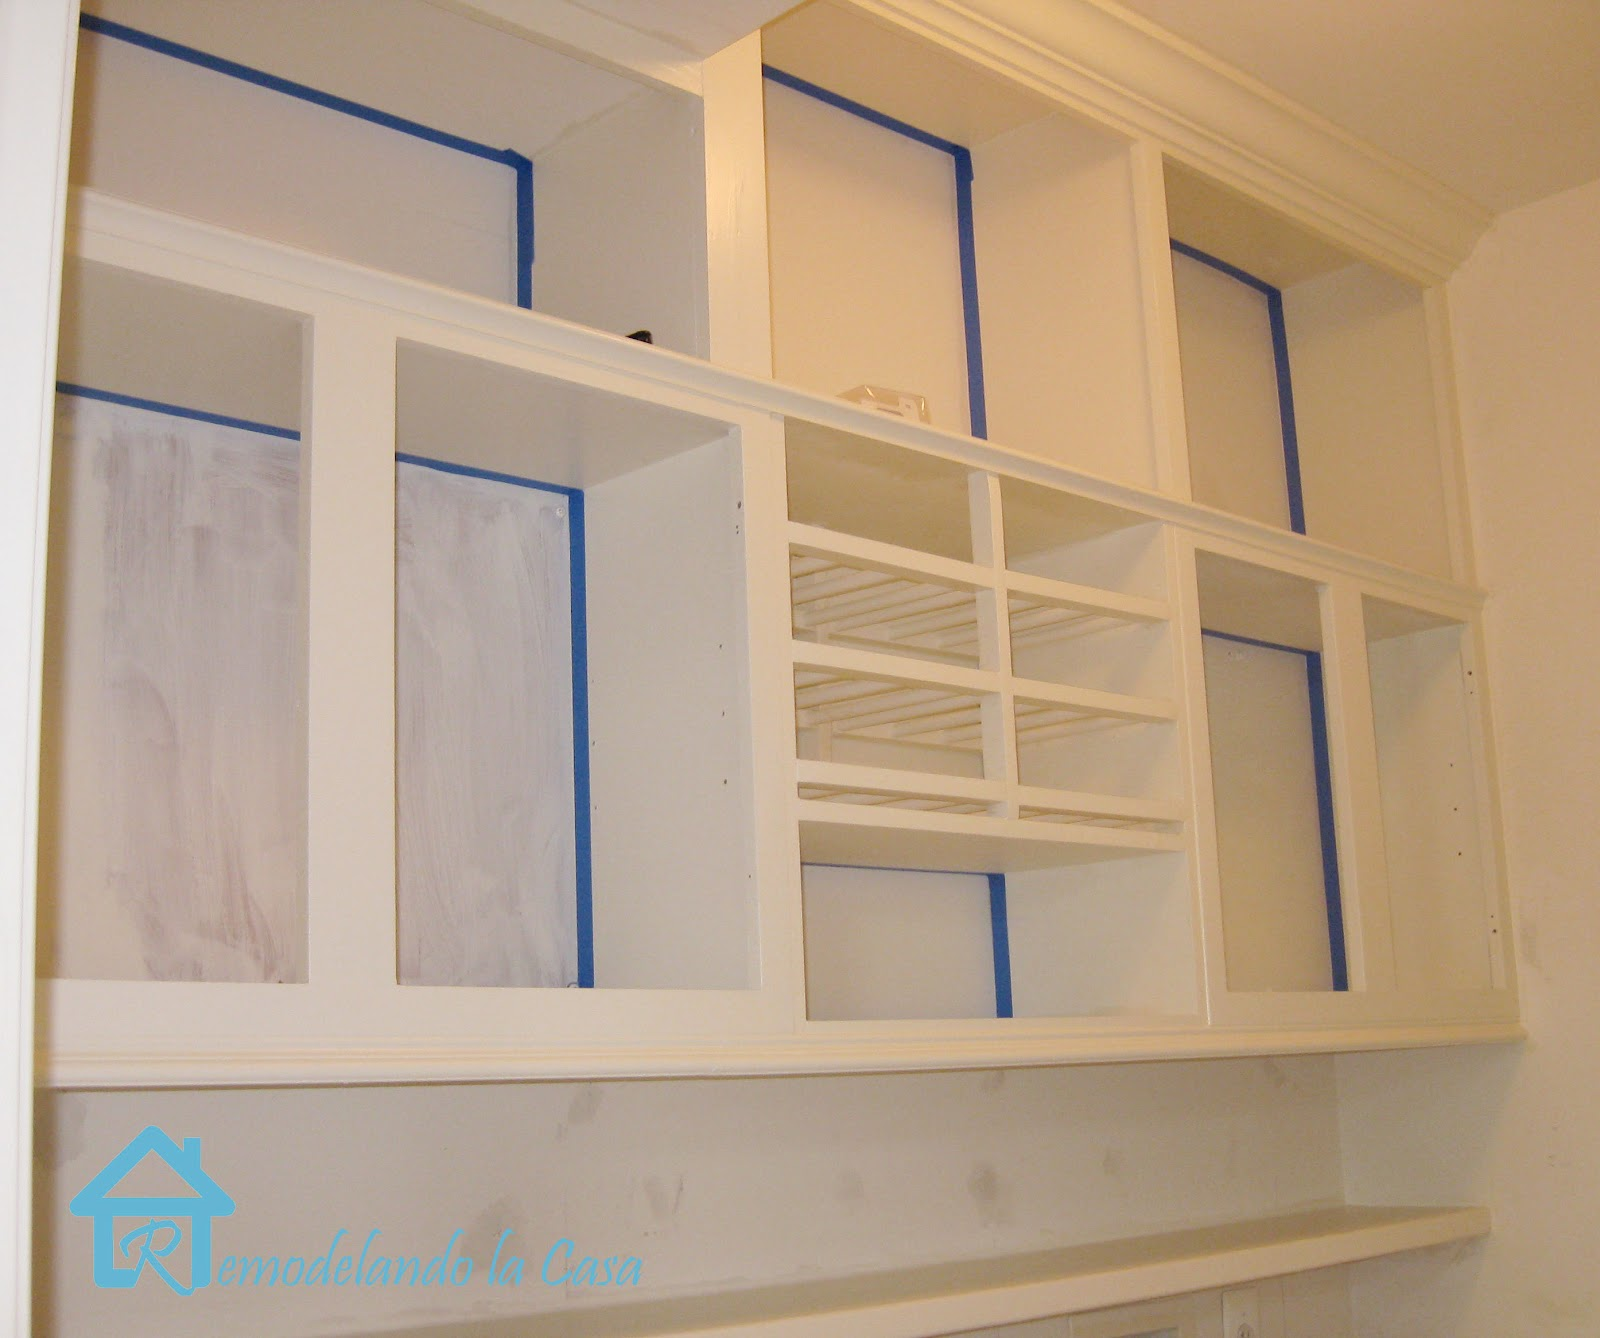 Overhead Kitchen Cabinet: Building The Cabinets Up To The Ceiling